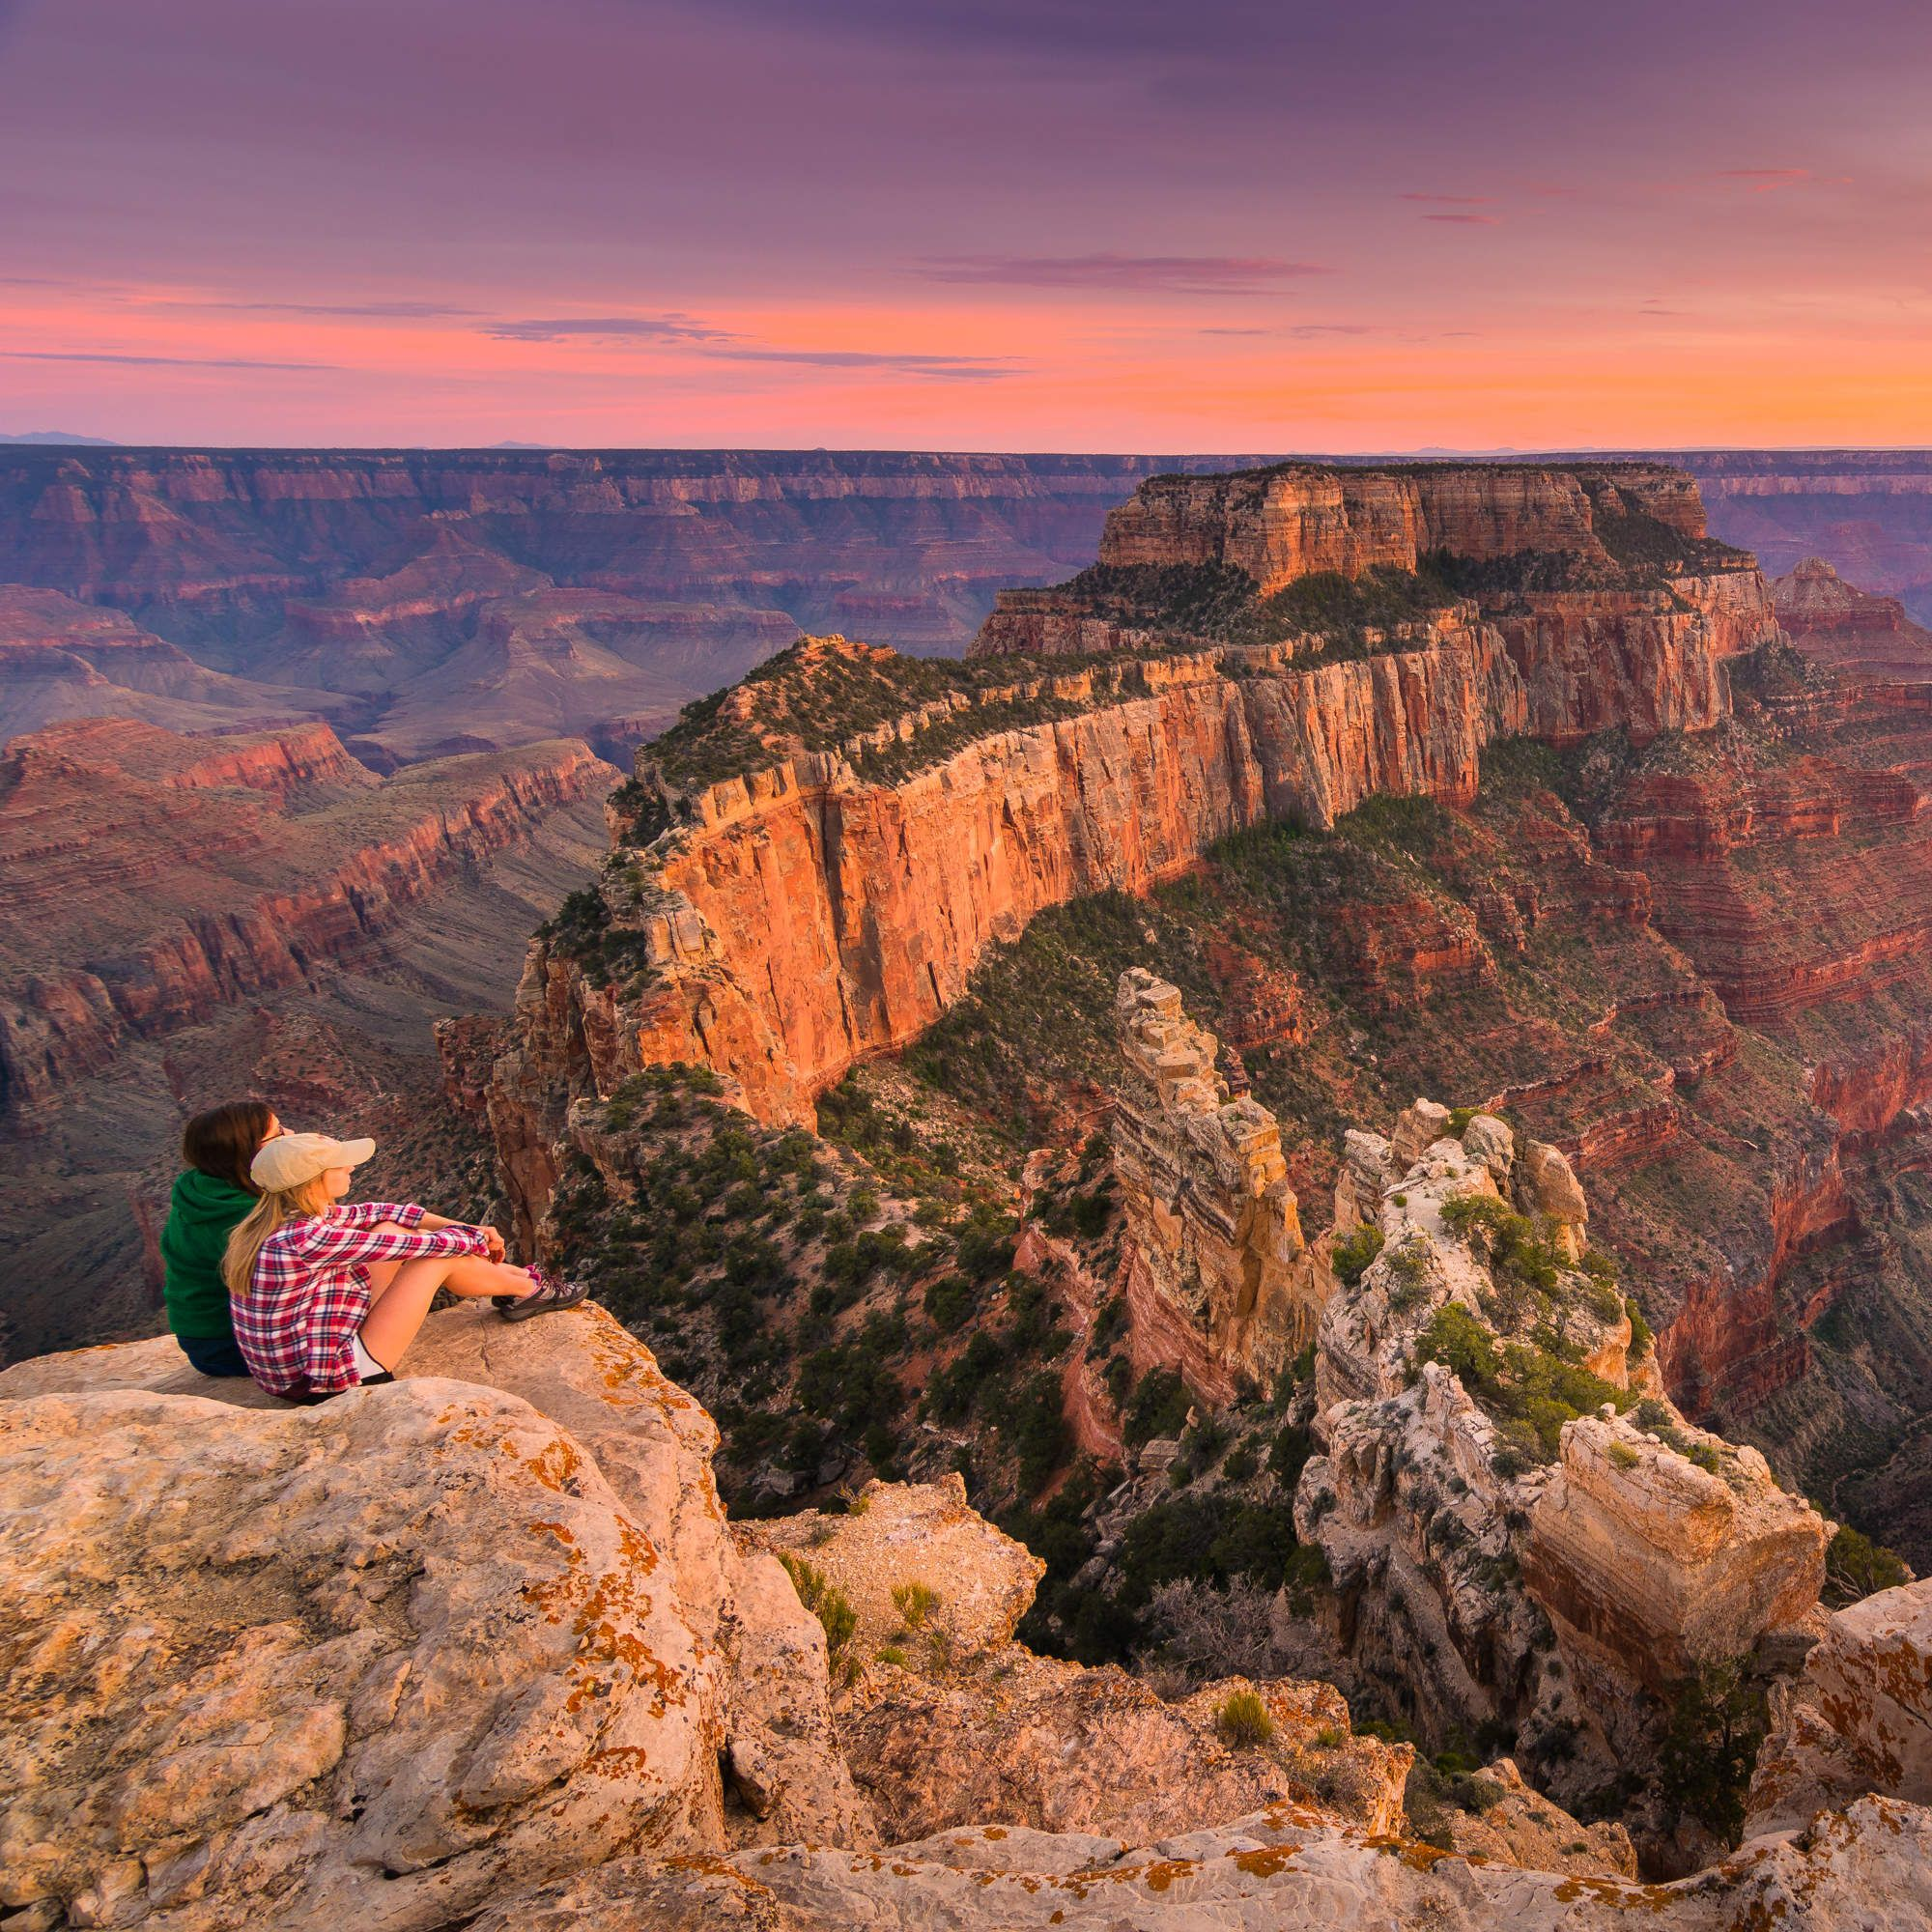 Hiking Tours Usa: The Great American Bucket List: 50 Things To Do In The US